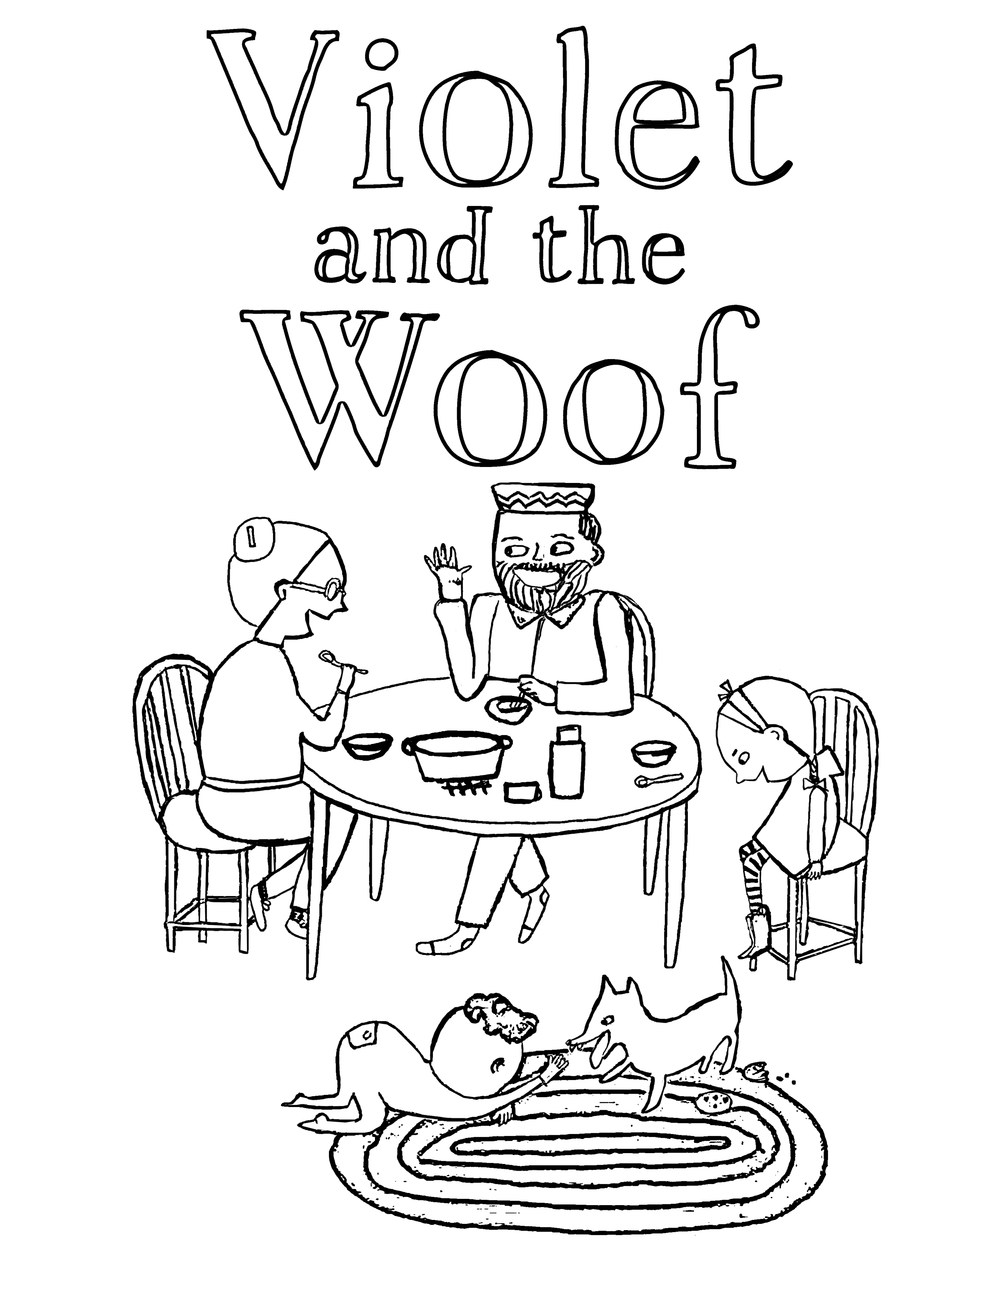 Violet and her neighbors (and the WOOF). A free printable coloring page from Violet and the Woof by Rebecca Grabill and Dasha Tolstikova